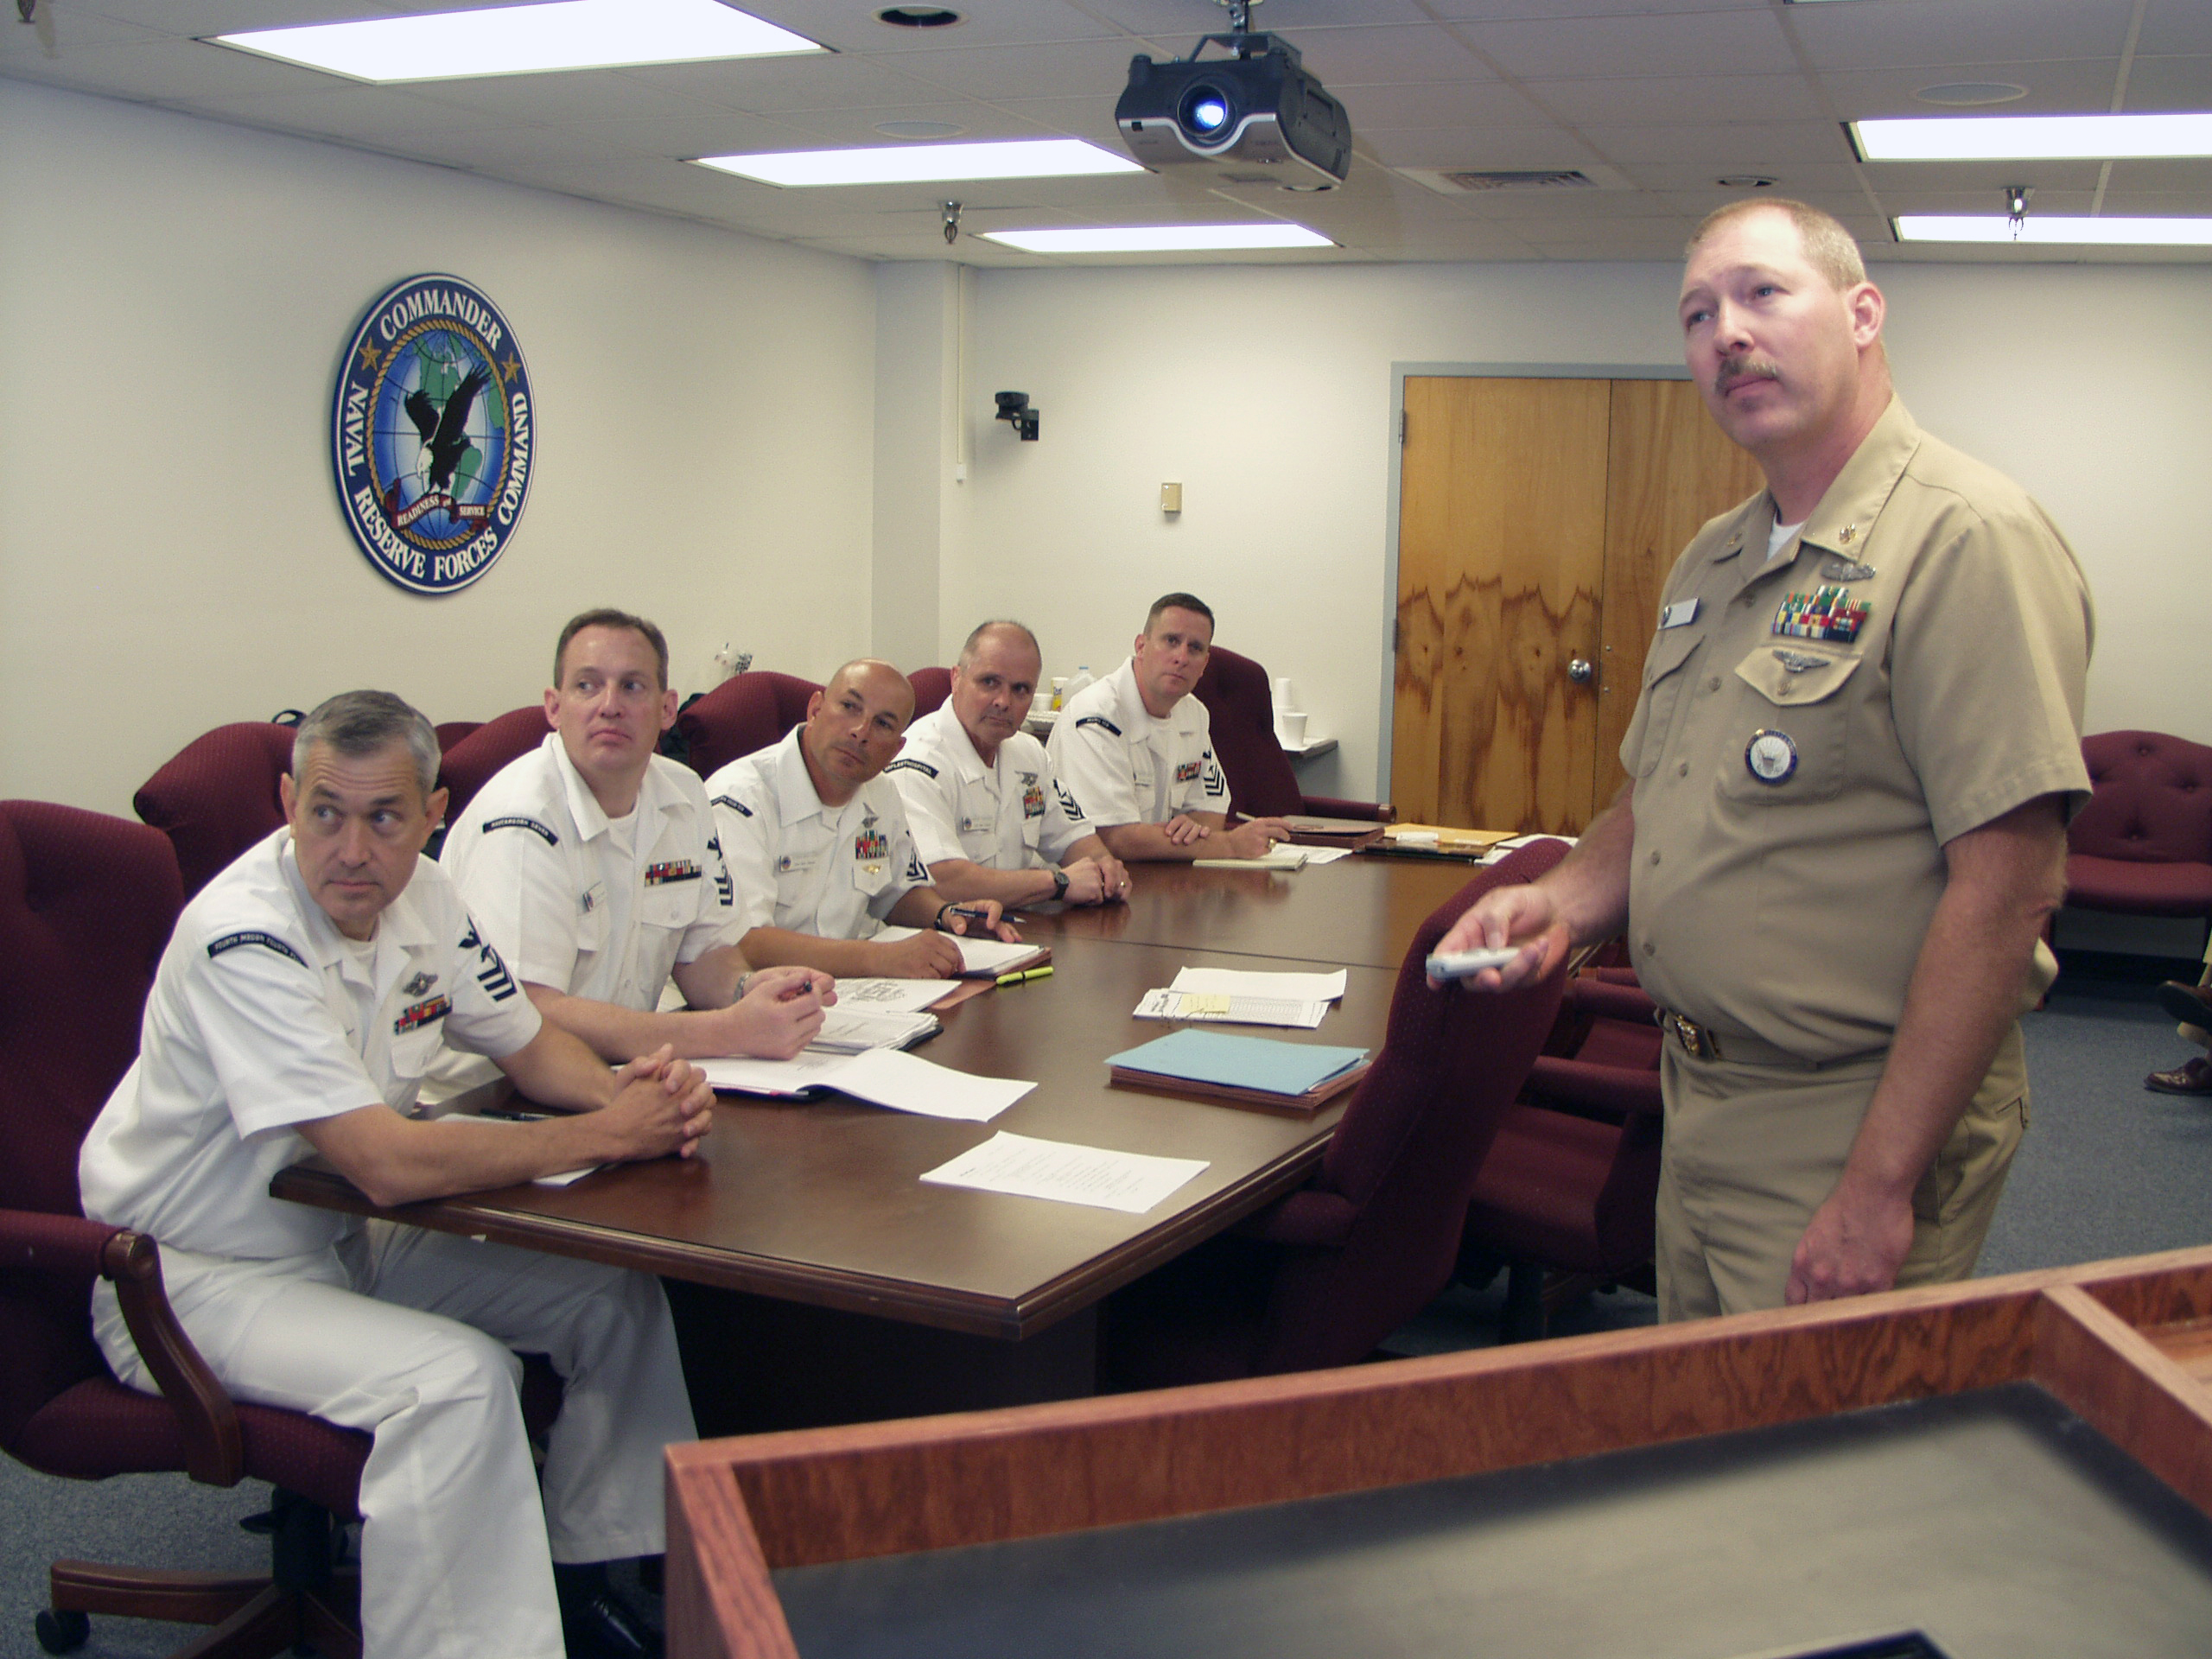 File:US Navy 040427-N-5477D-010 Master Chief Navy Counselor David ...